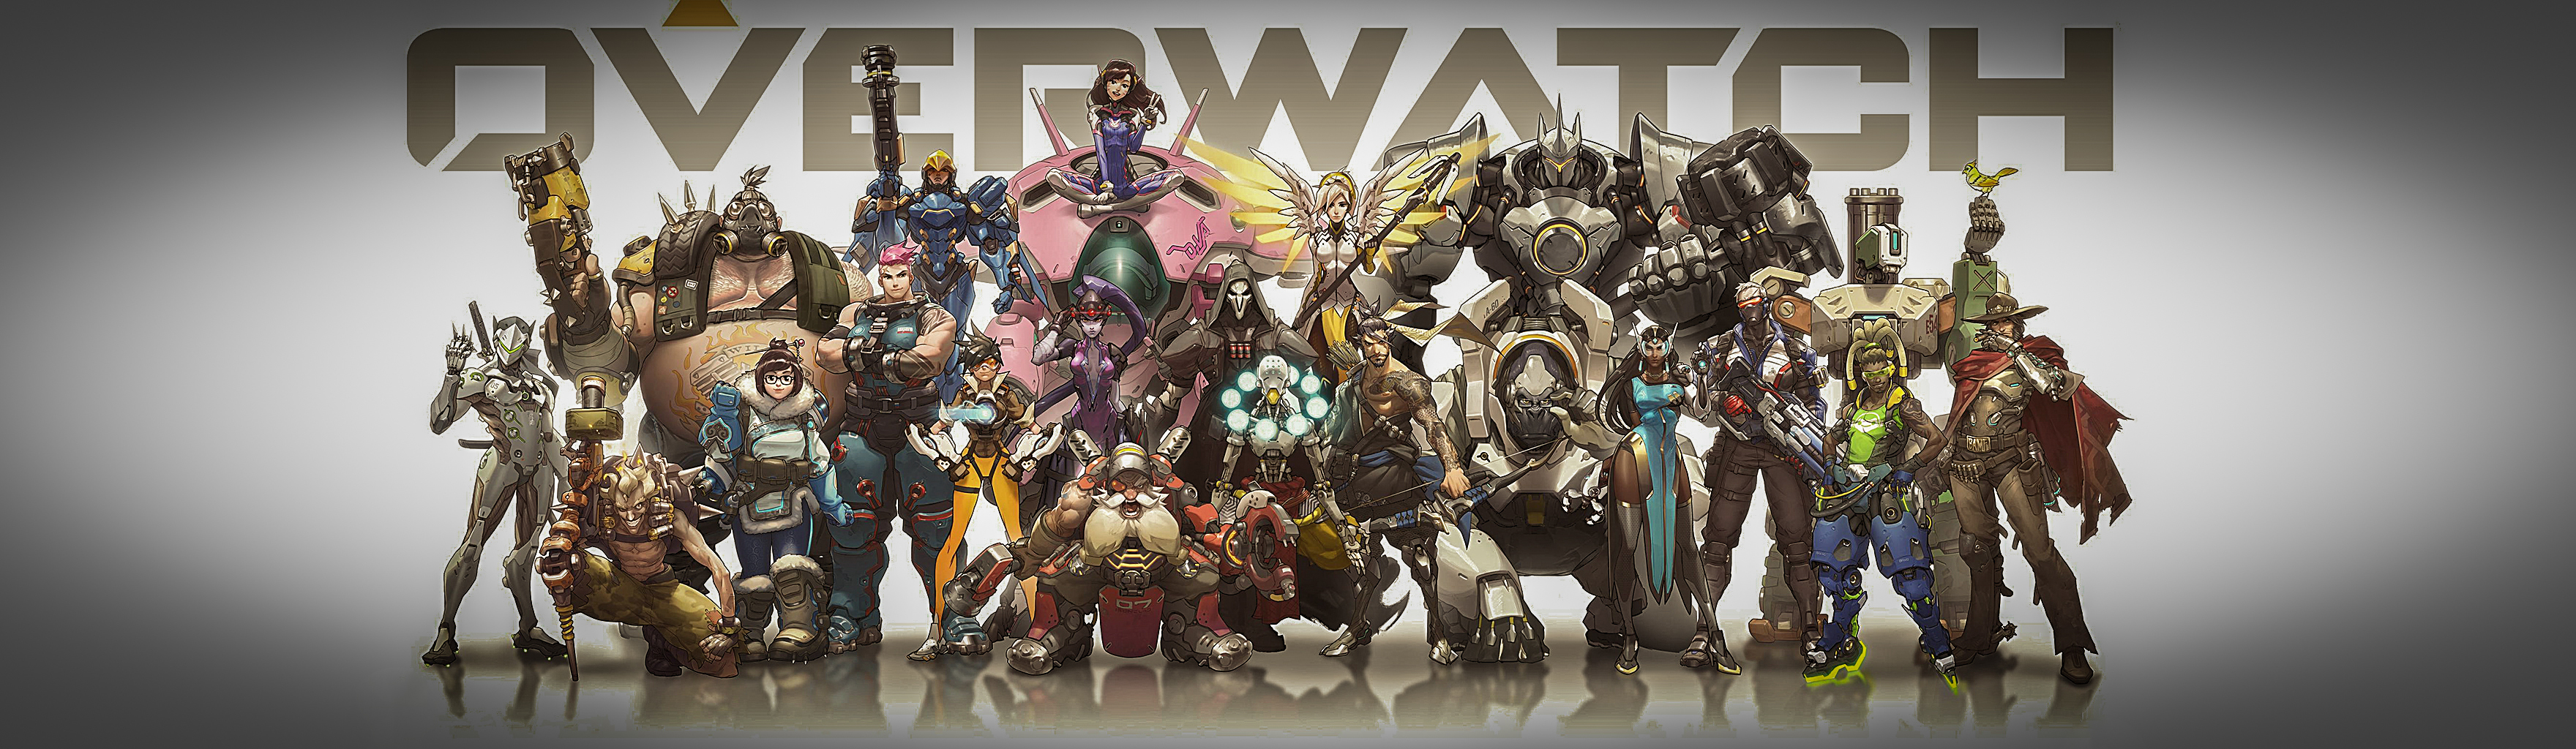 cool overwatch wallpapers